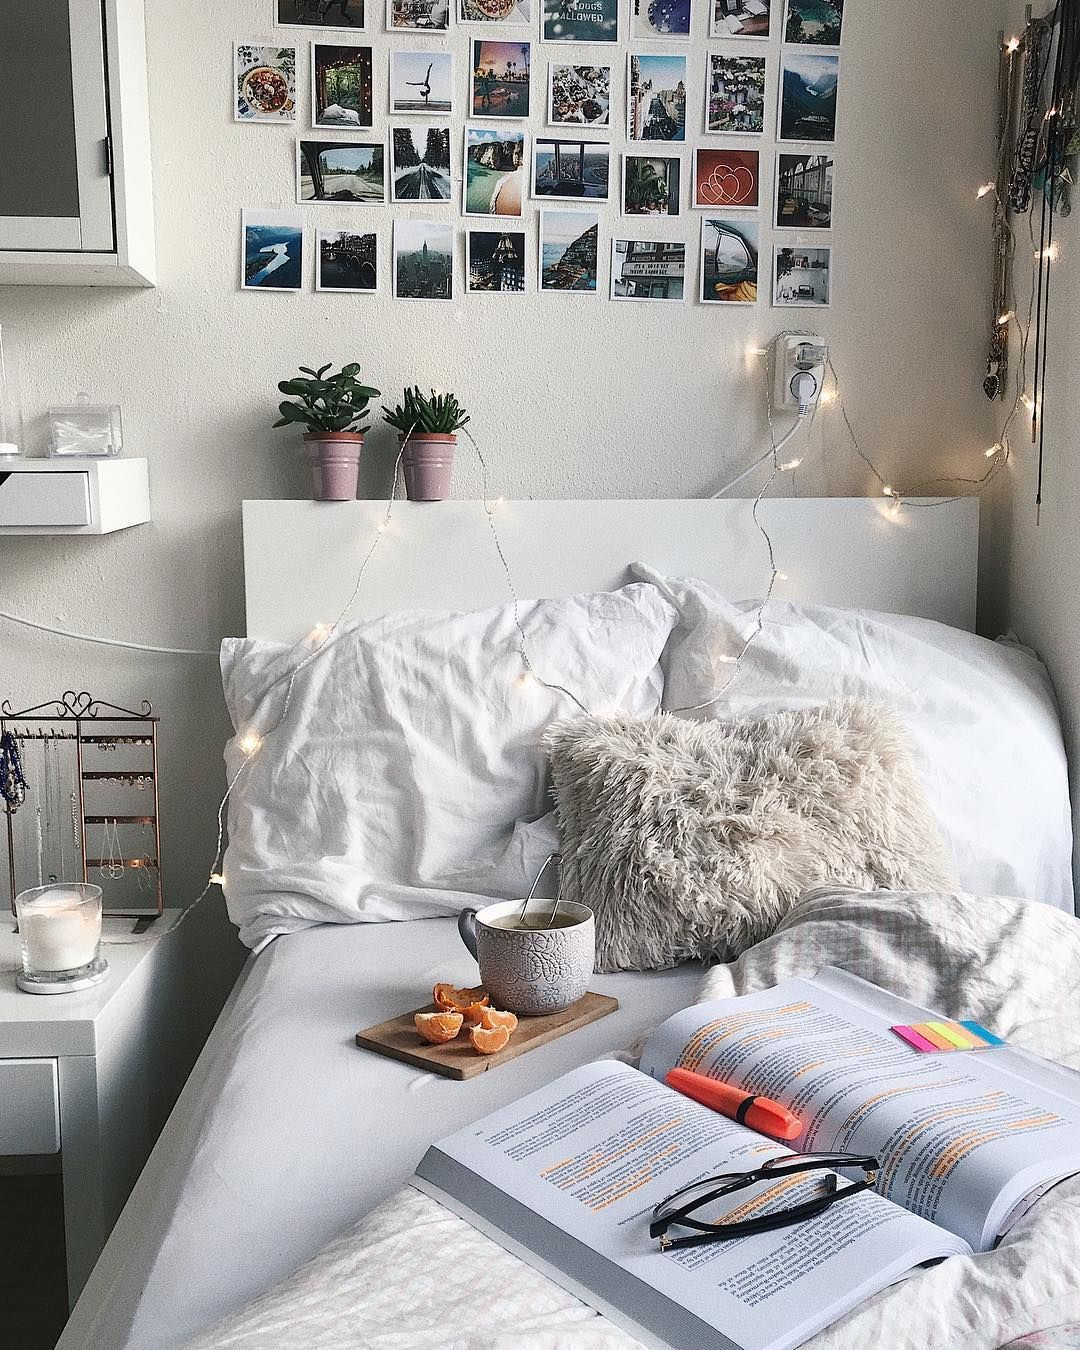 Cute Korean Bedroom Design Nice Bedrooms For Girls Pink Bedroom Furniture Marble Top Horse Bedroom Accessories: 21 Of The Cutest Dorm Inspirations That Would Make You